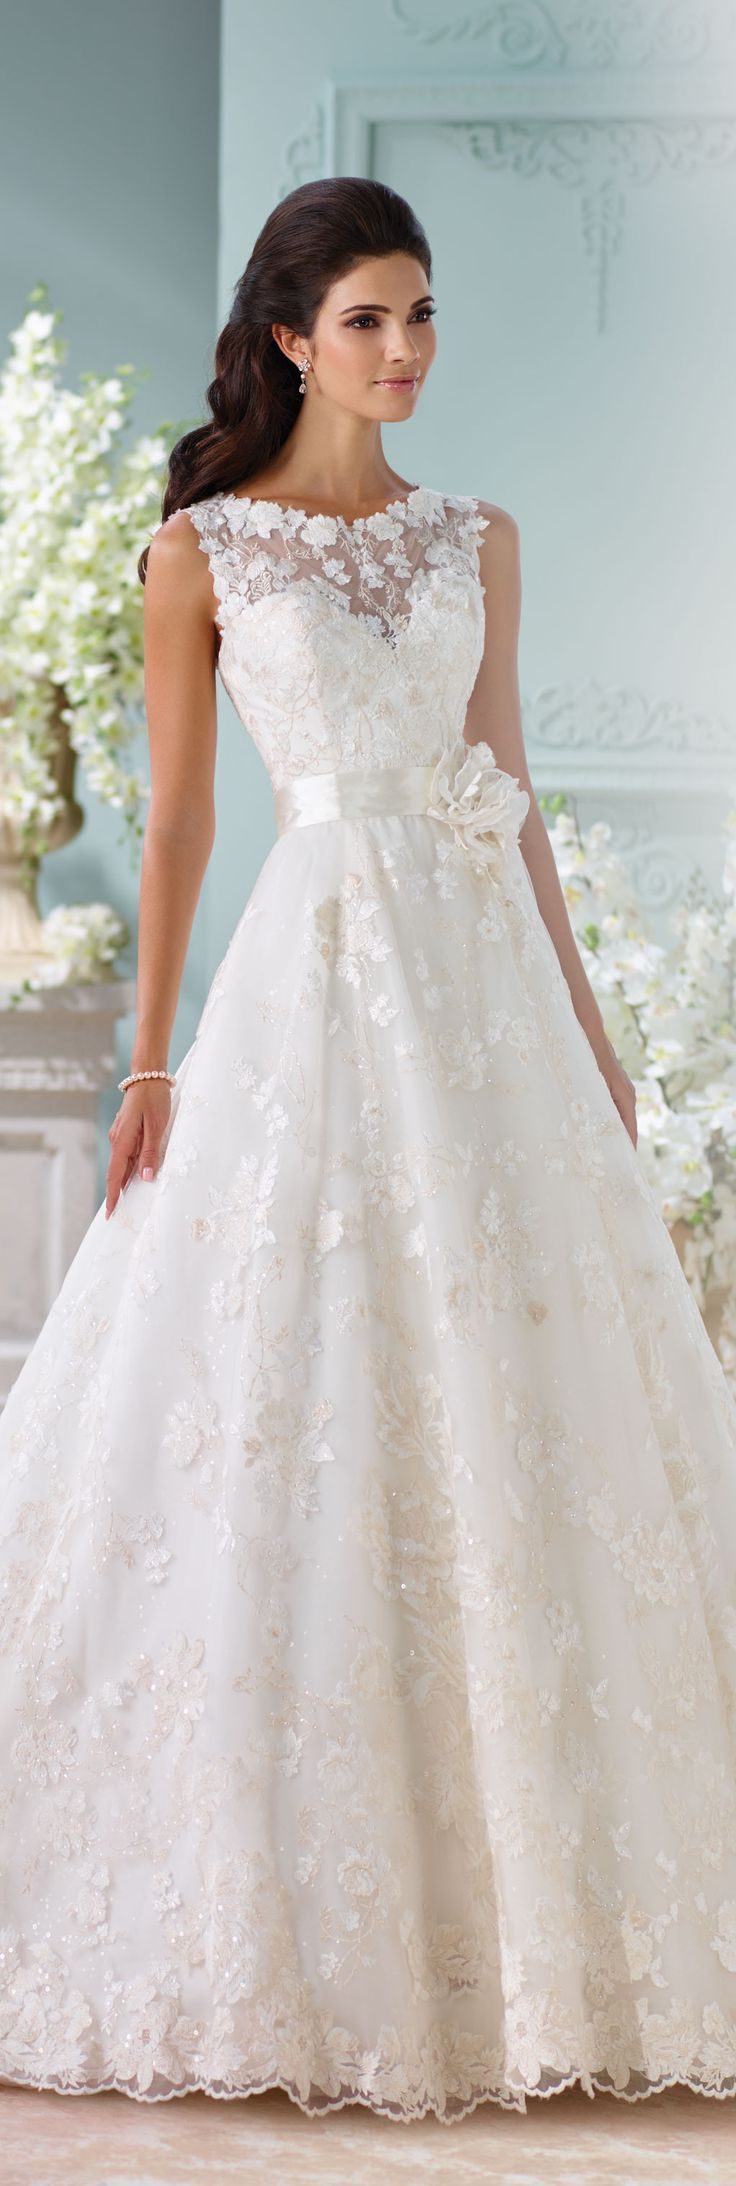 best gowns images on pinterest wedding frocks homecoming